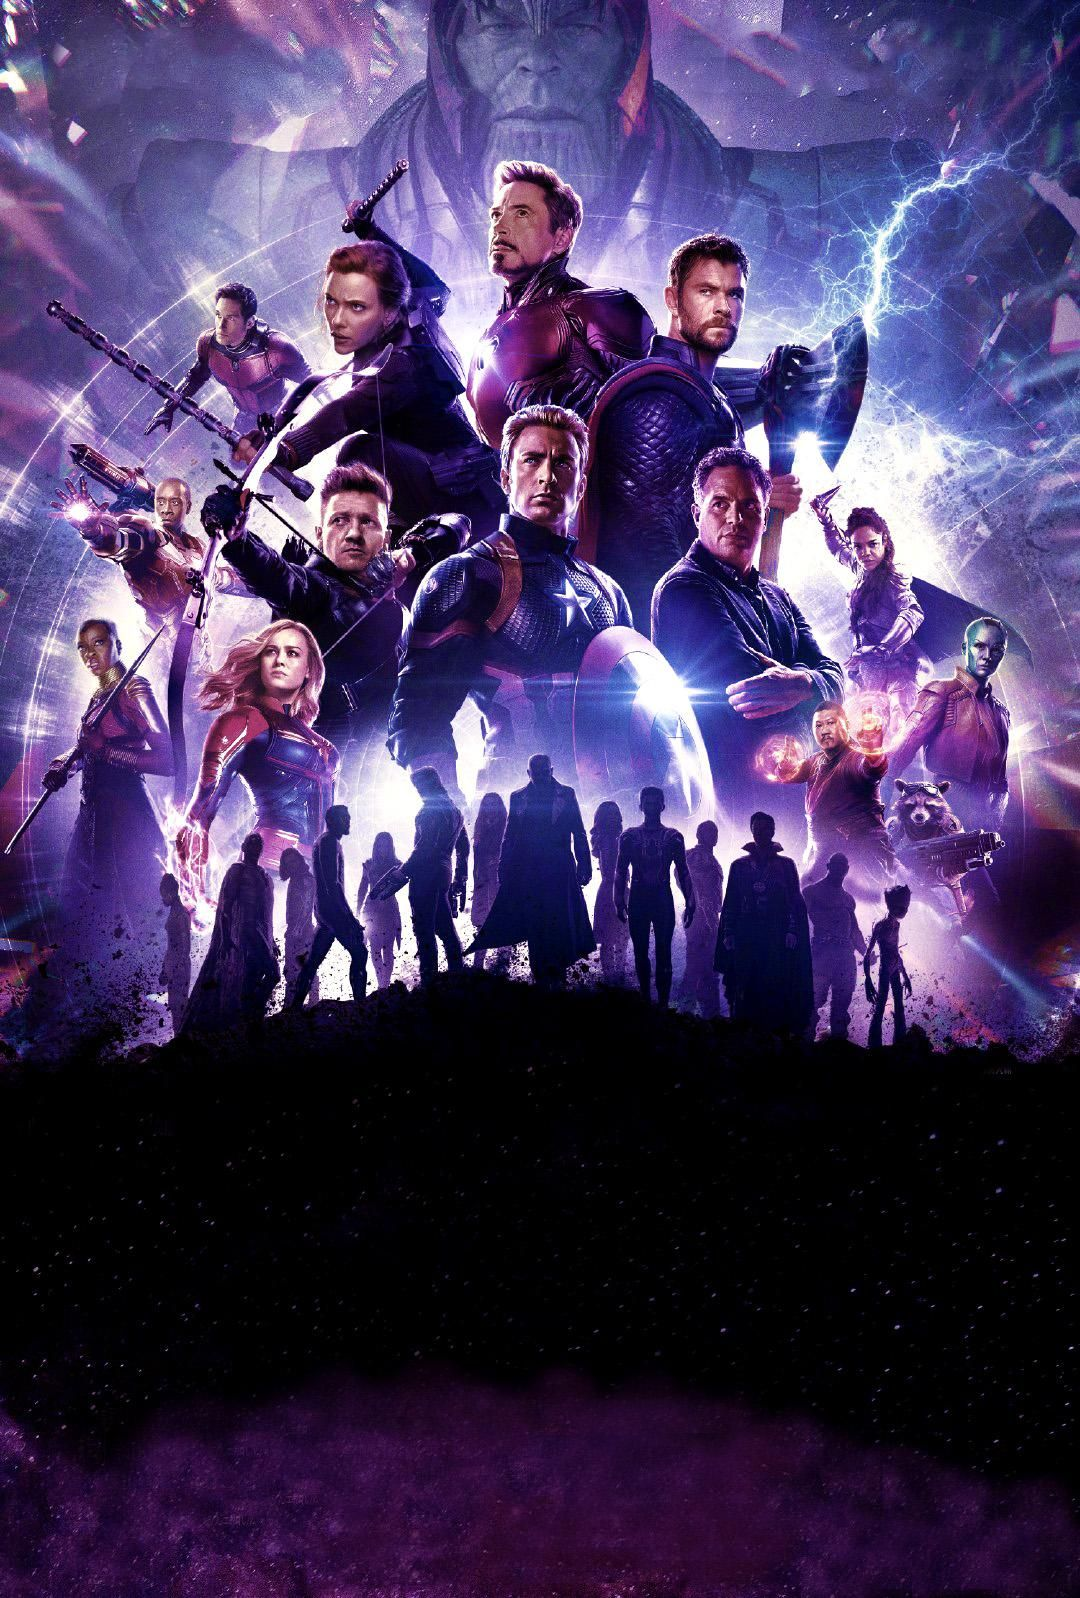 Textless Poster With Purple Color Scheme Due To Popular Request Marvel Posters Avengers Poster Marvel Superheroes